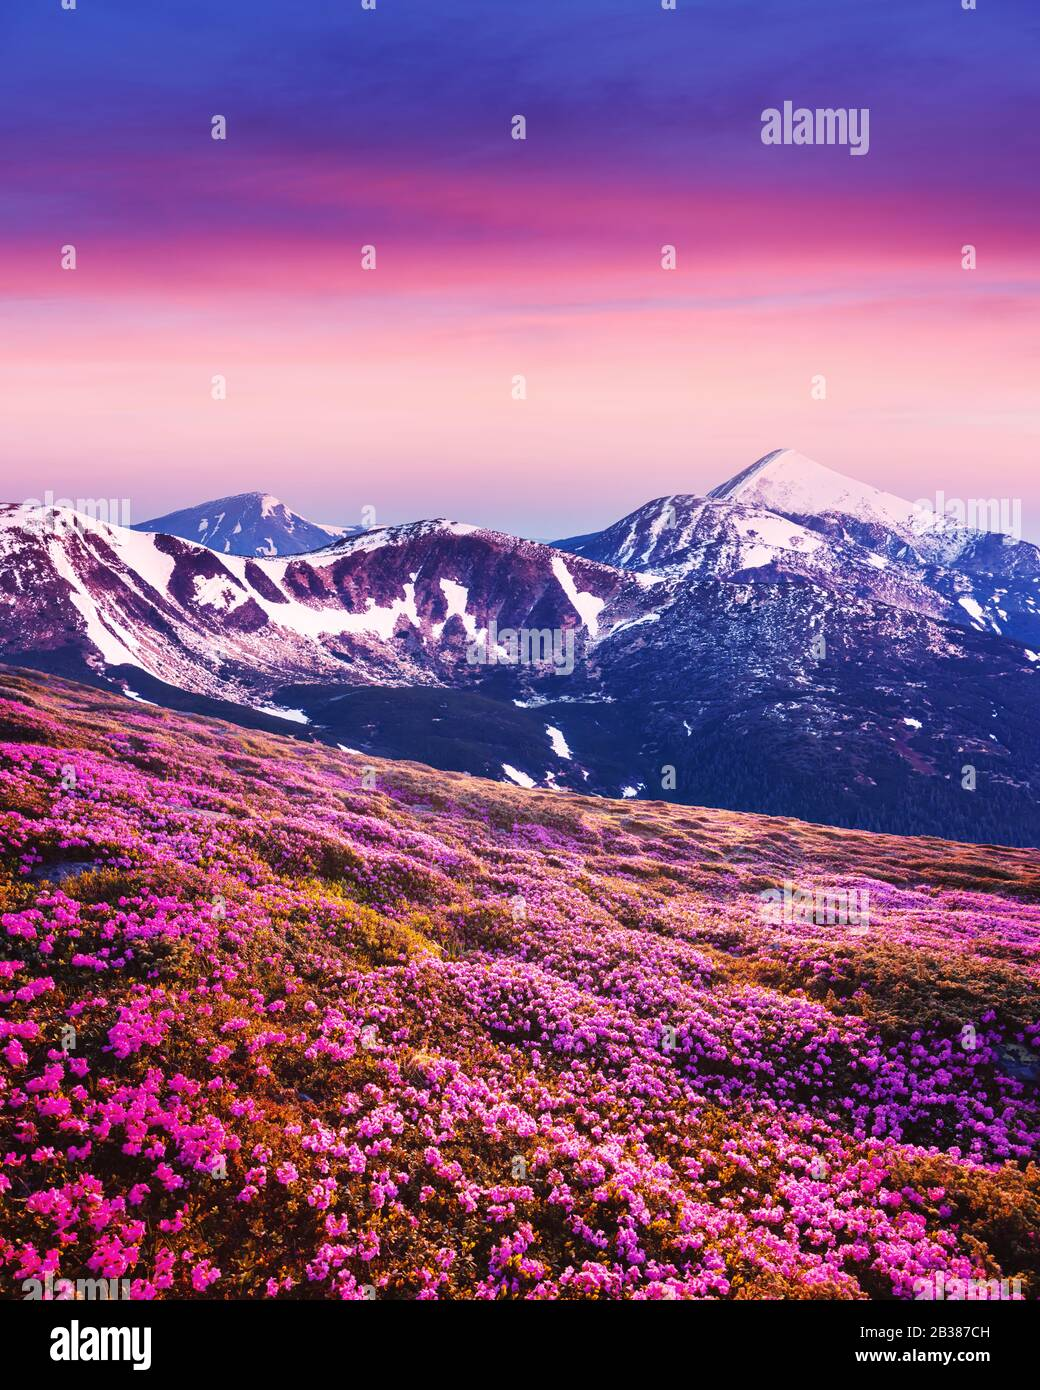 Rhododendron flowers covered mountains meadow in summer time. Purple sunrise light glowing on snowy peaks on background. Landscape photography Stock Photo